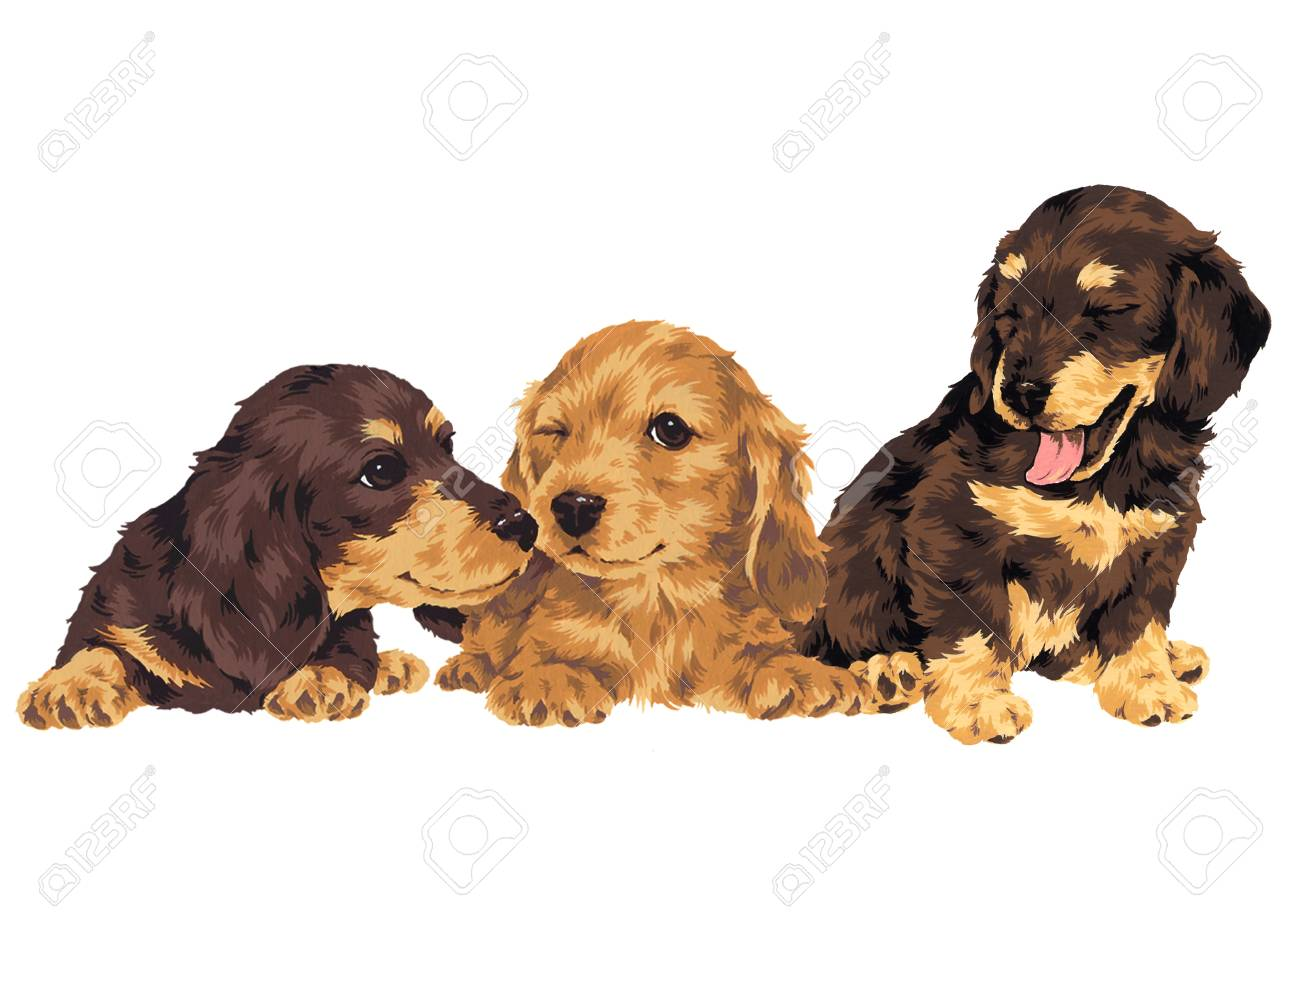 puppy Stock Photo - 20492914